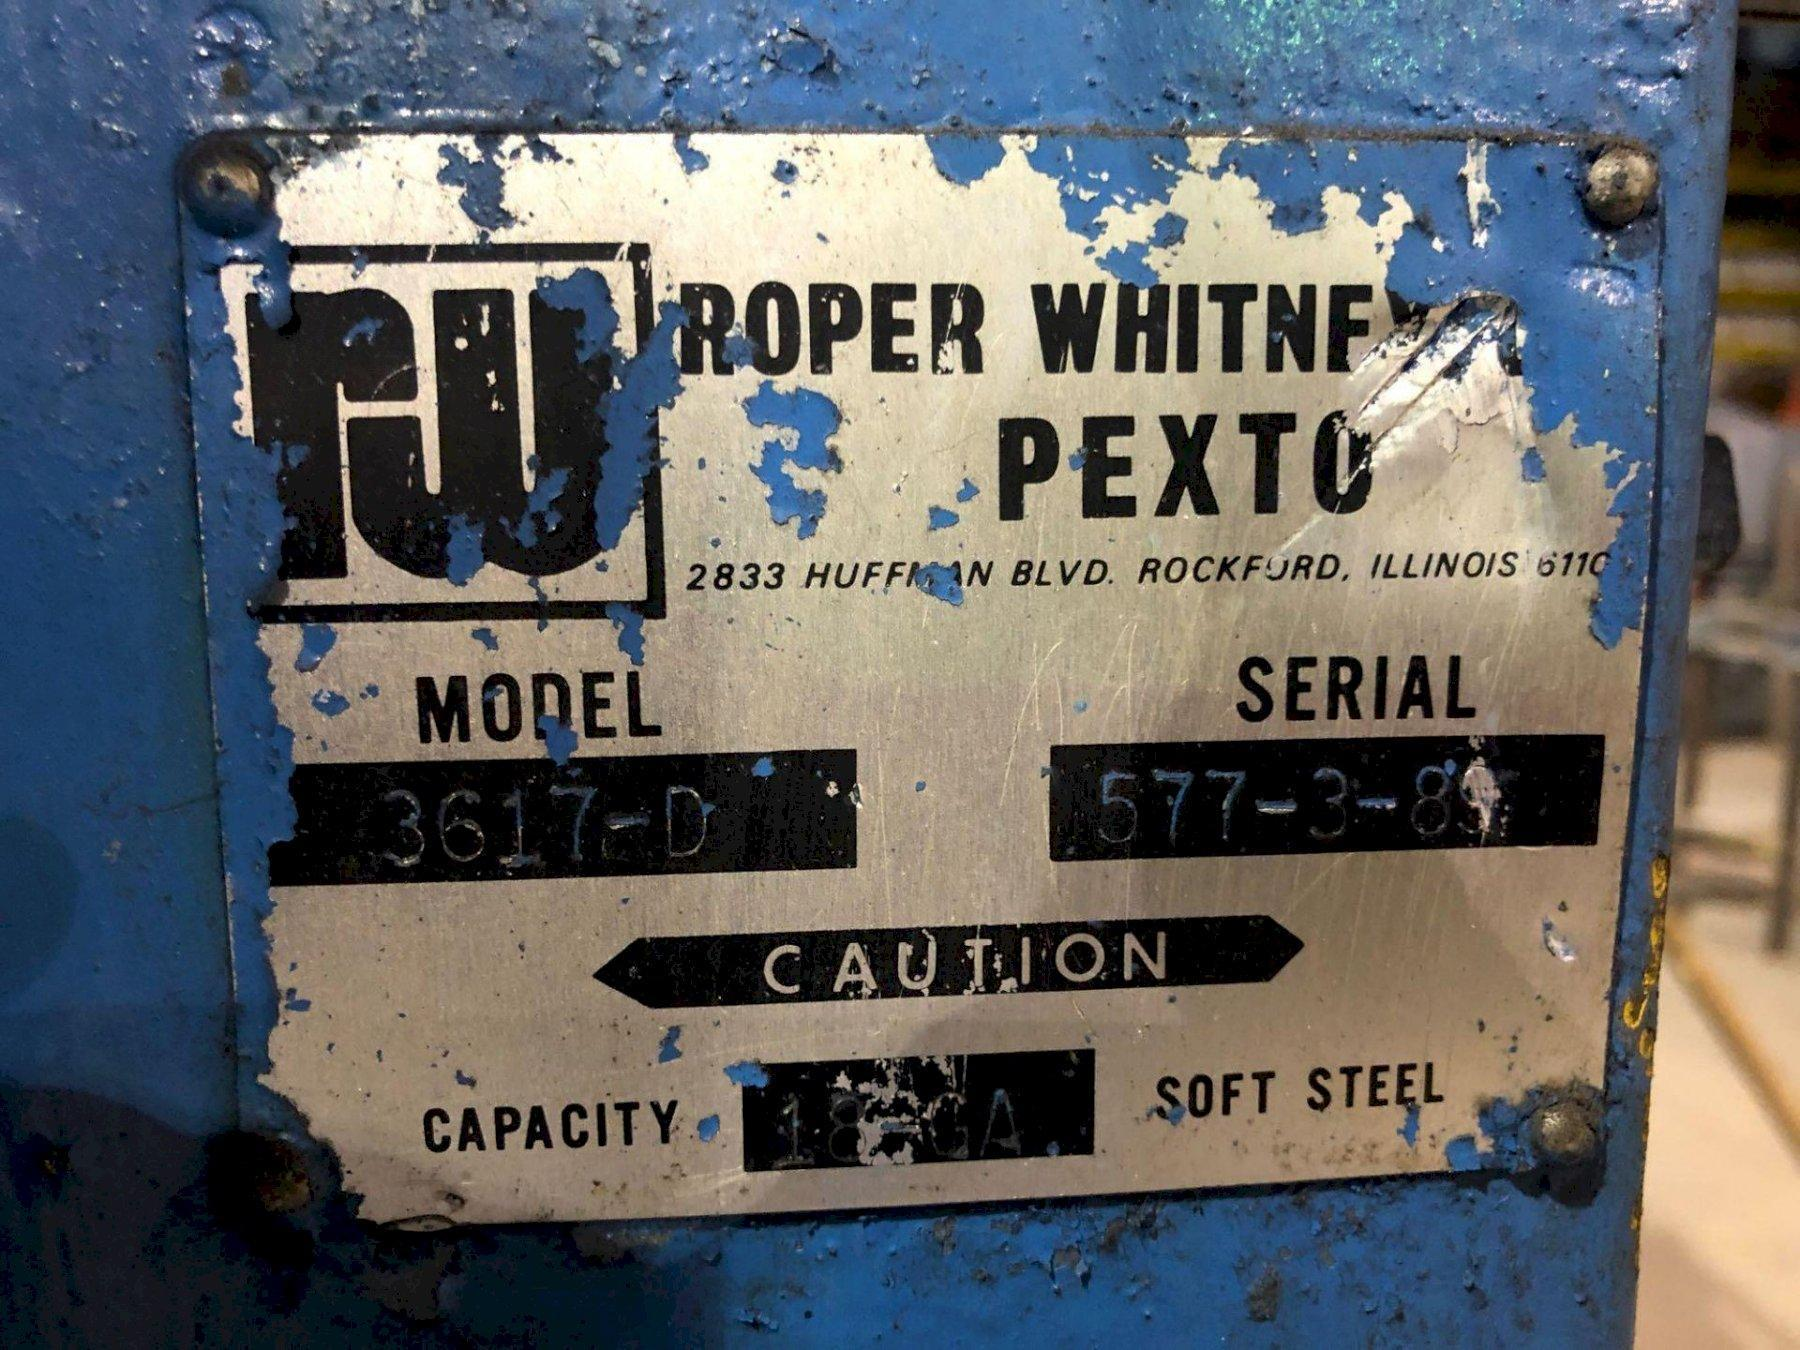 ROPER WHITNEY PEXTO 3671-D POWERED COMBO ROTARY MACHINE. STOCK # 0415221